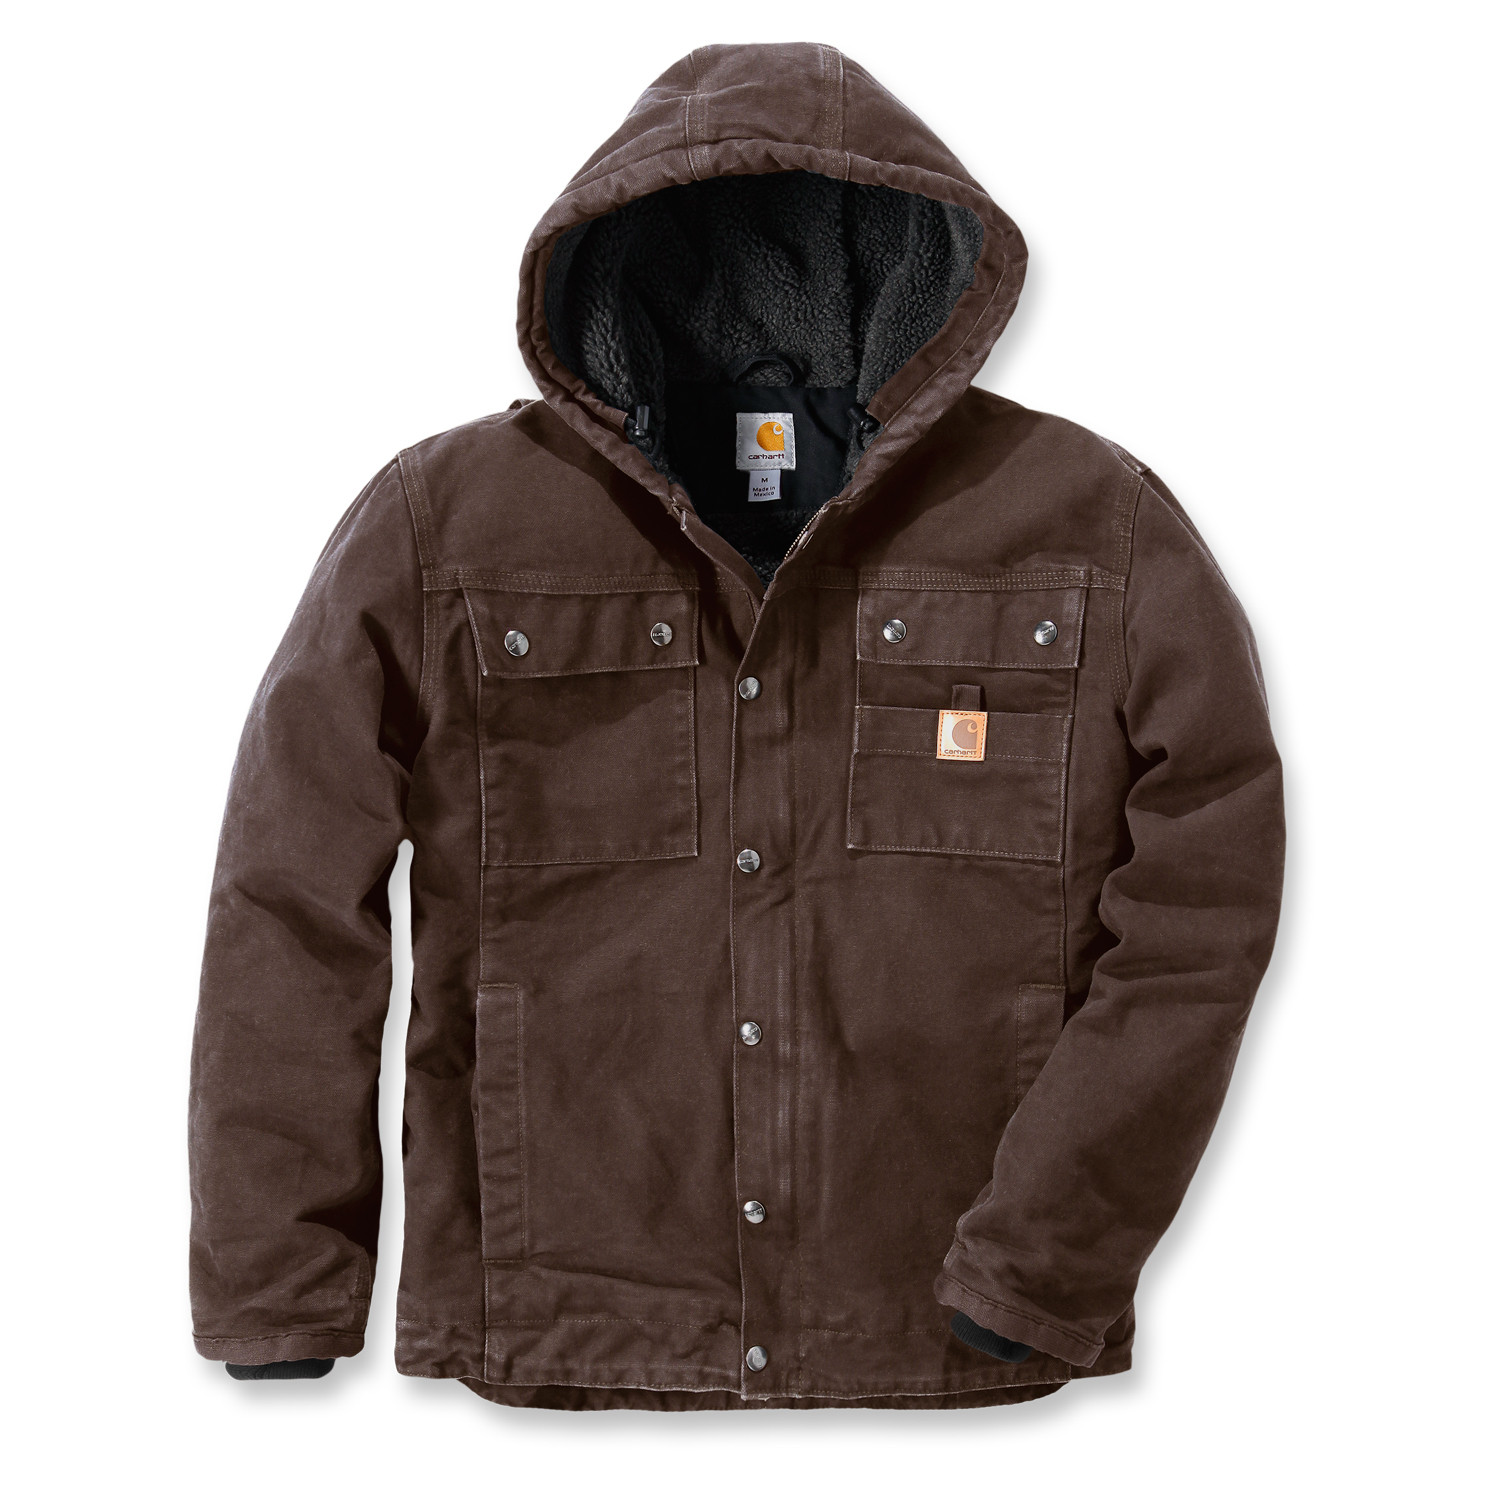 Куртка котоновая Carhartt Sandstone Barlett Jacket - 102285 (Dark Brown, M)